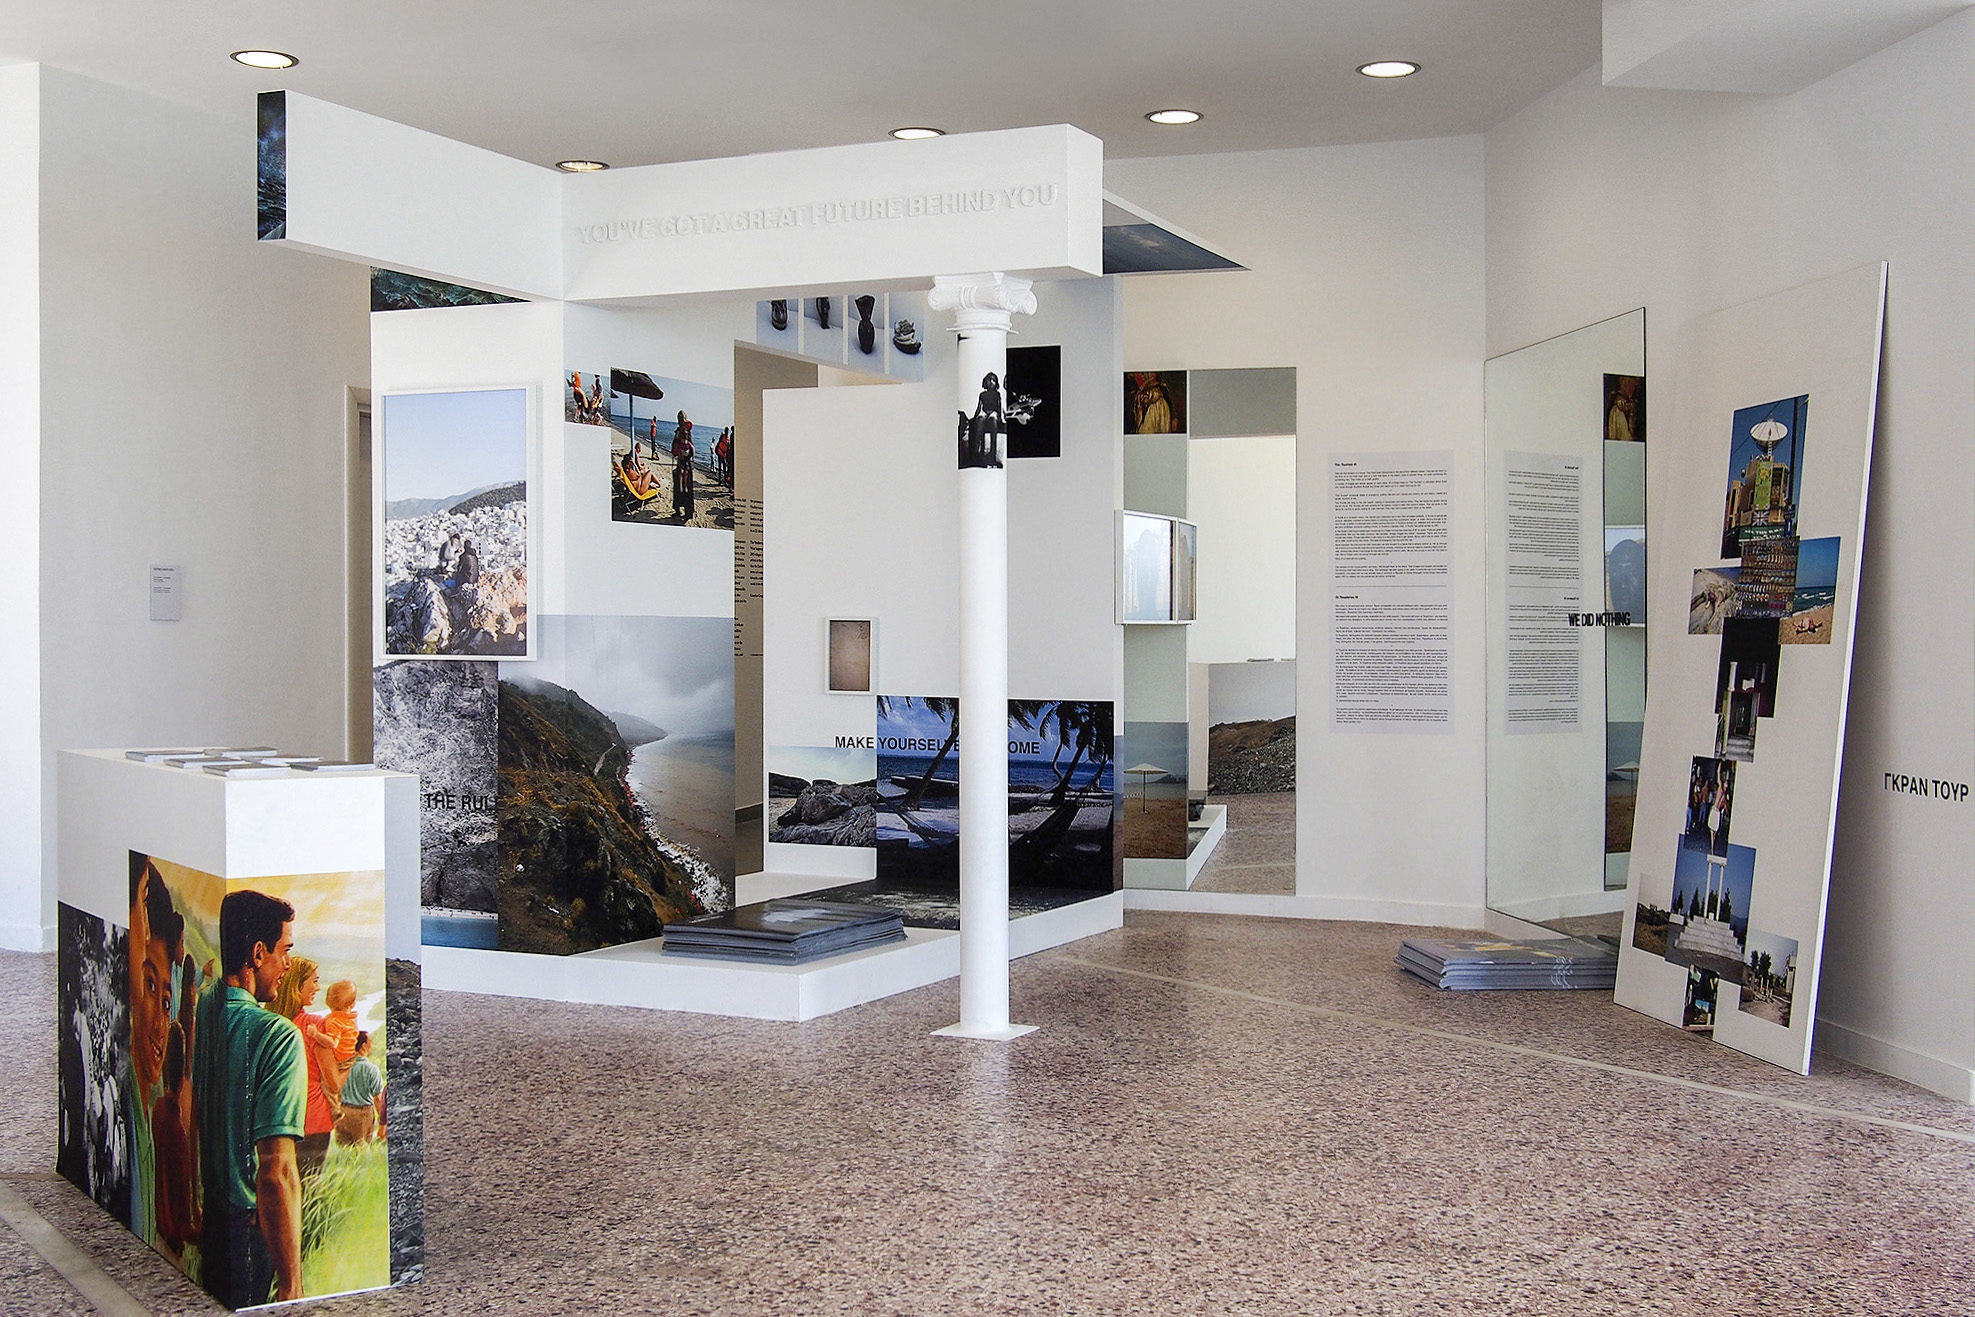 Depression Era exhibition   «13,700,000 km3», curated by Katerina Gregos, Art Space Pythagorion, Samos, Greece.